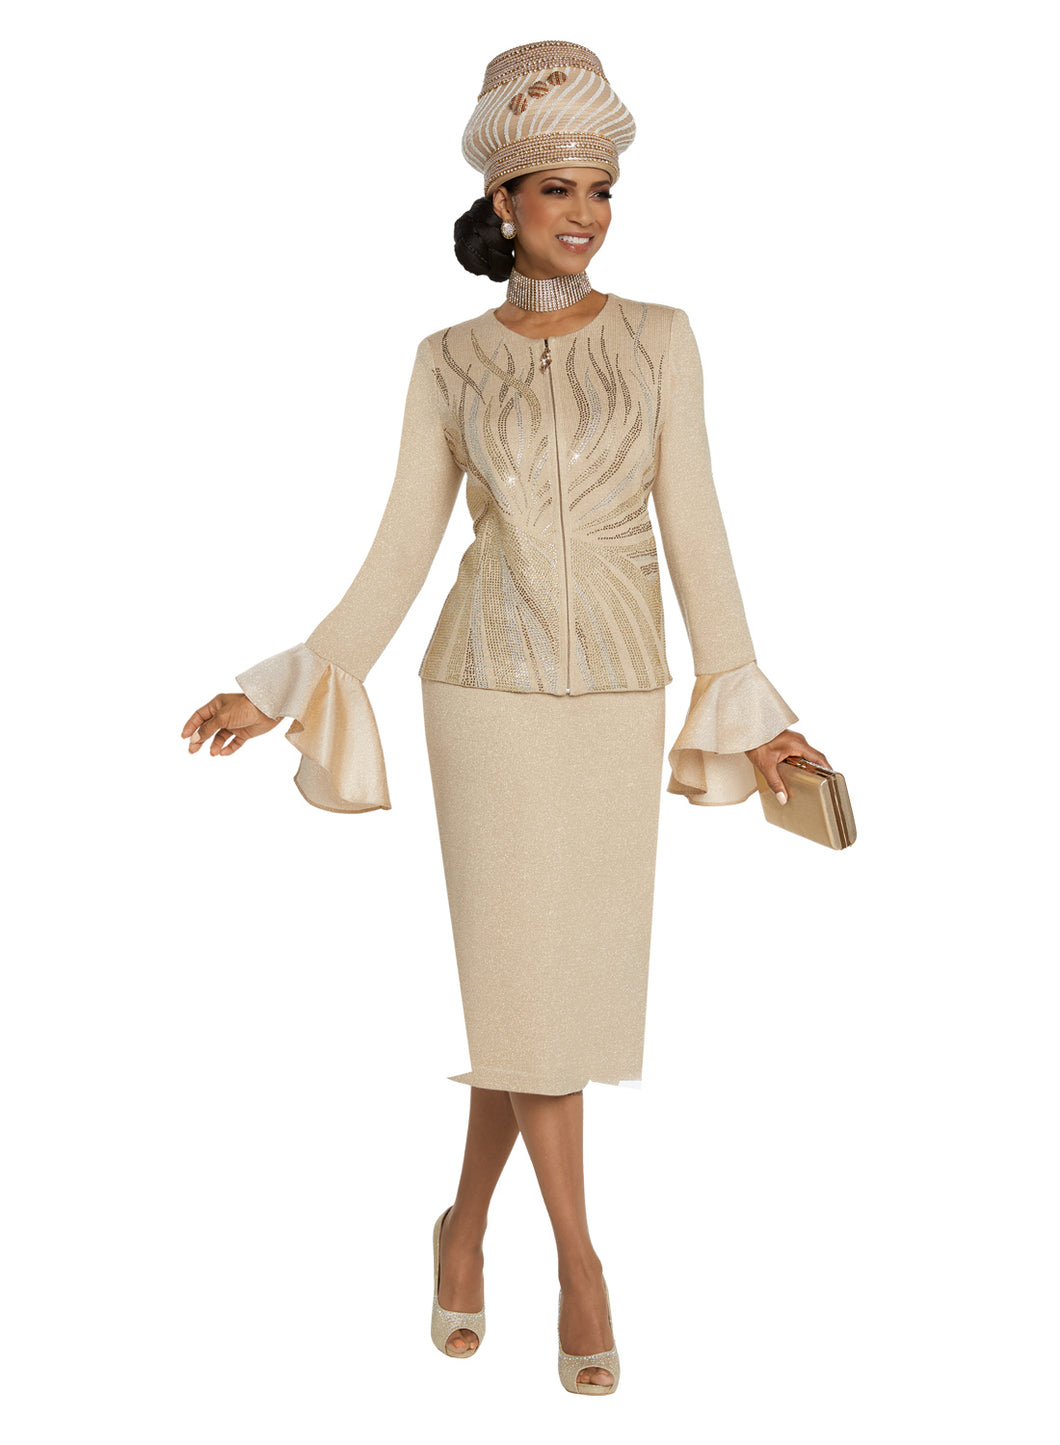 Donna Vinci Beige Knit 2 piece Jacket and Skirt Set - 13266